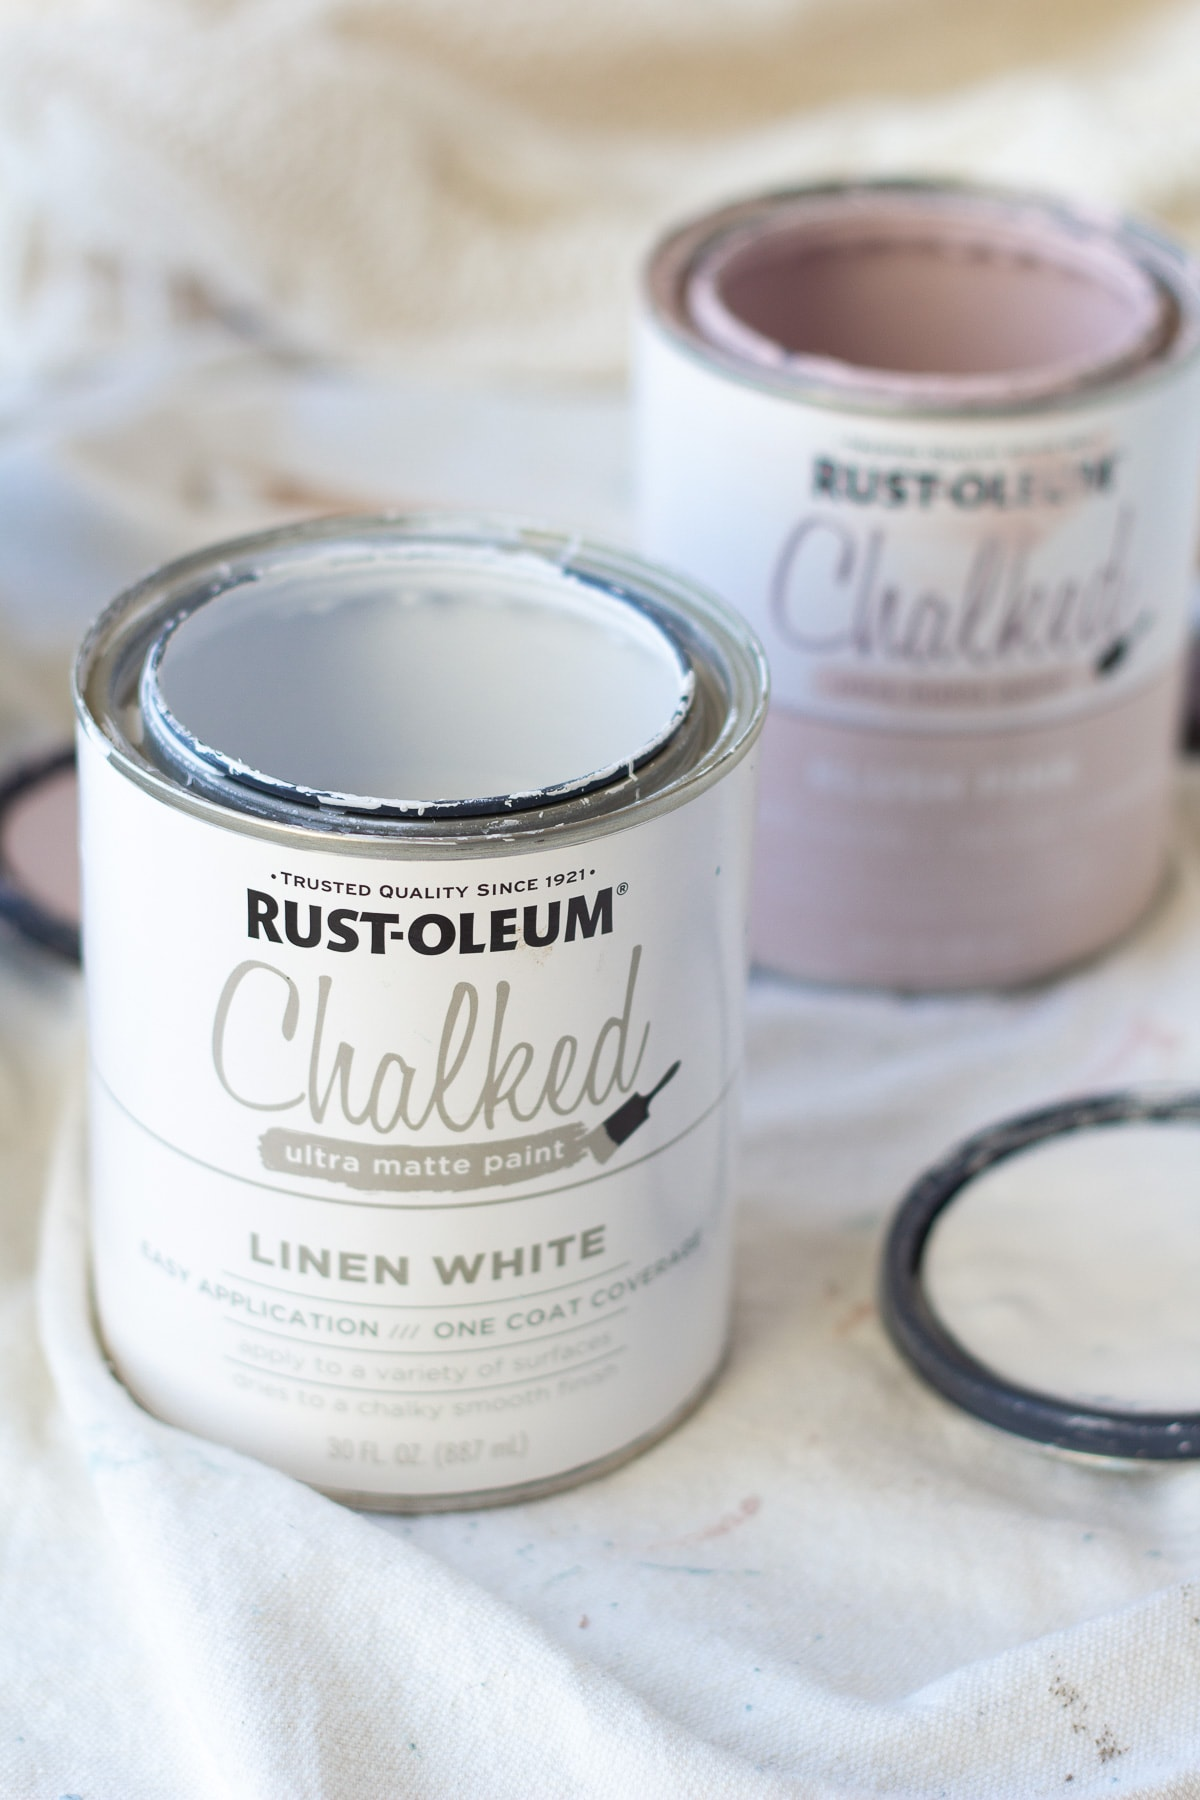 A can of Rust-Oleum chalked paint in Linen White.